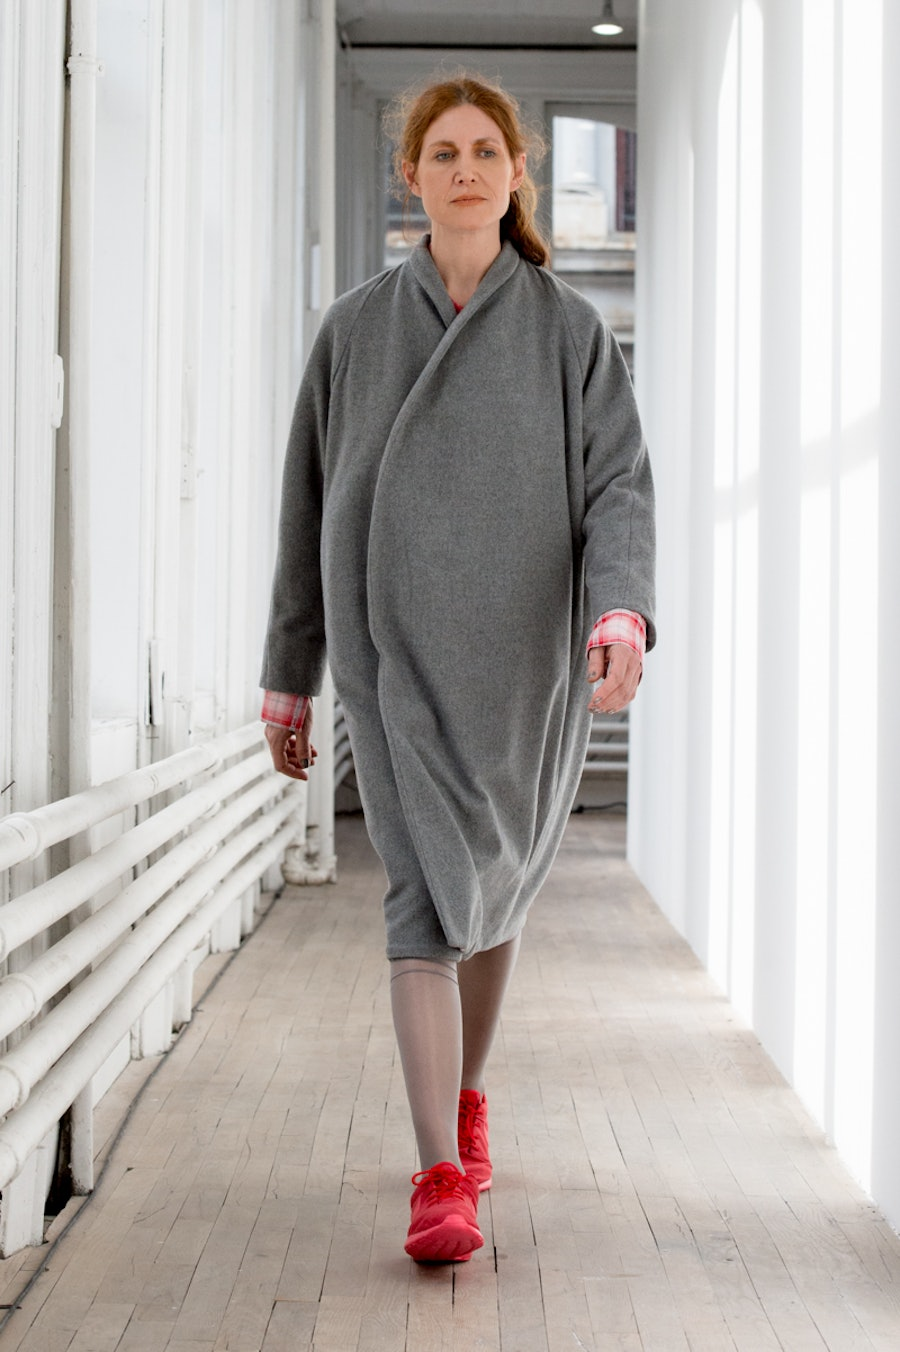 Eckhaus Latta Fall 2015